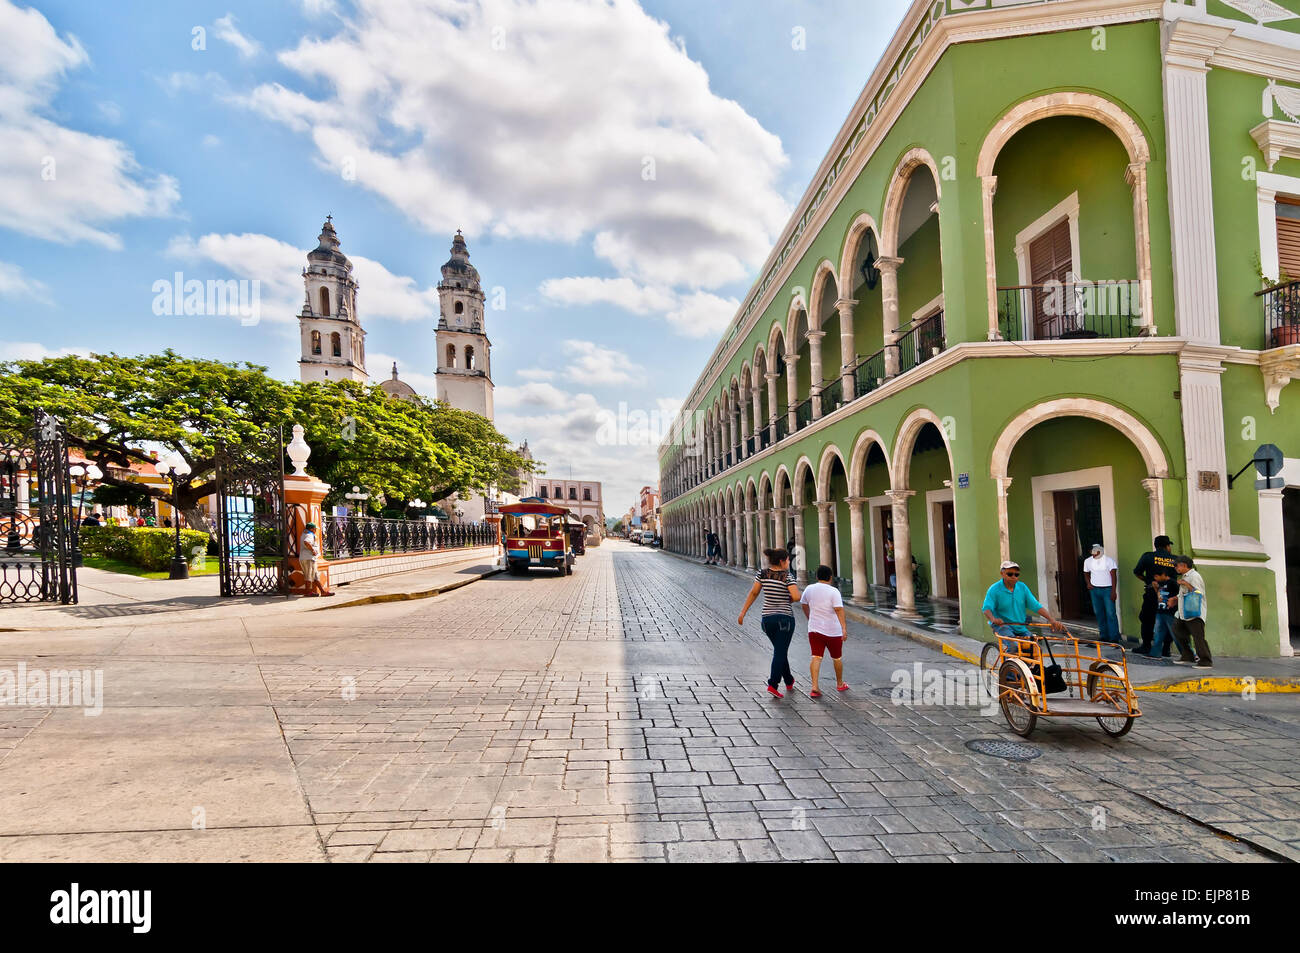 locals and tourists in main square with Cathedral in Campeche, Mexico. Stock Photo